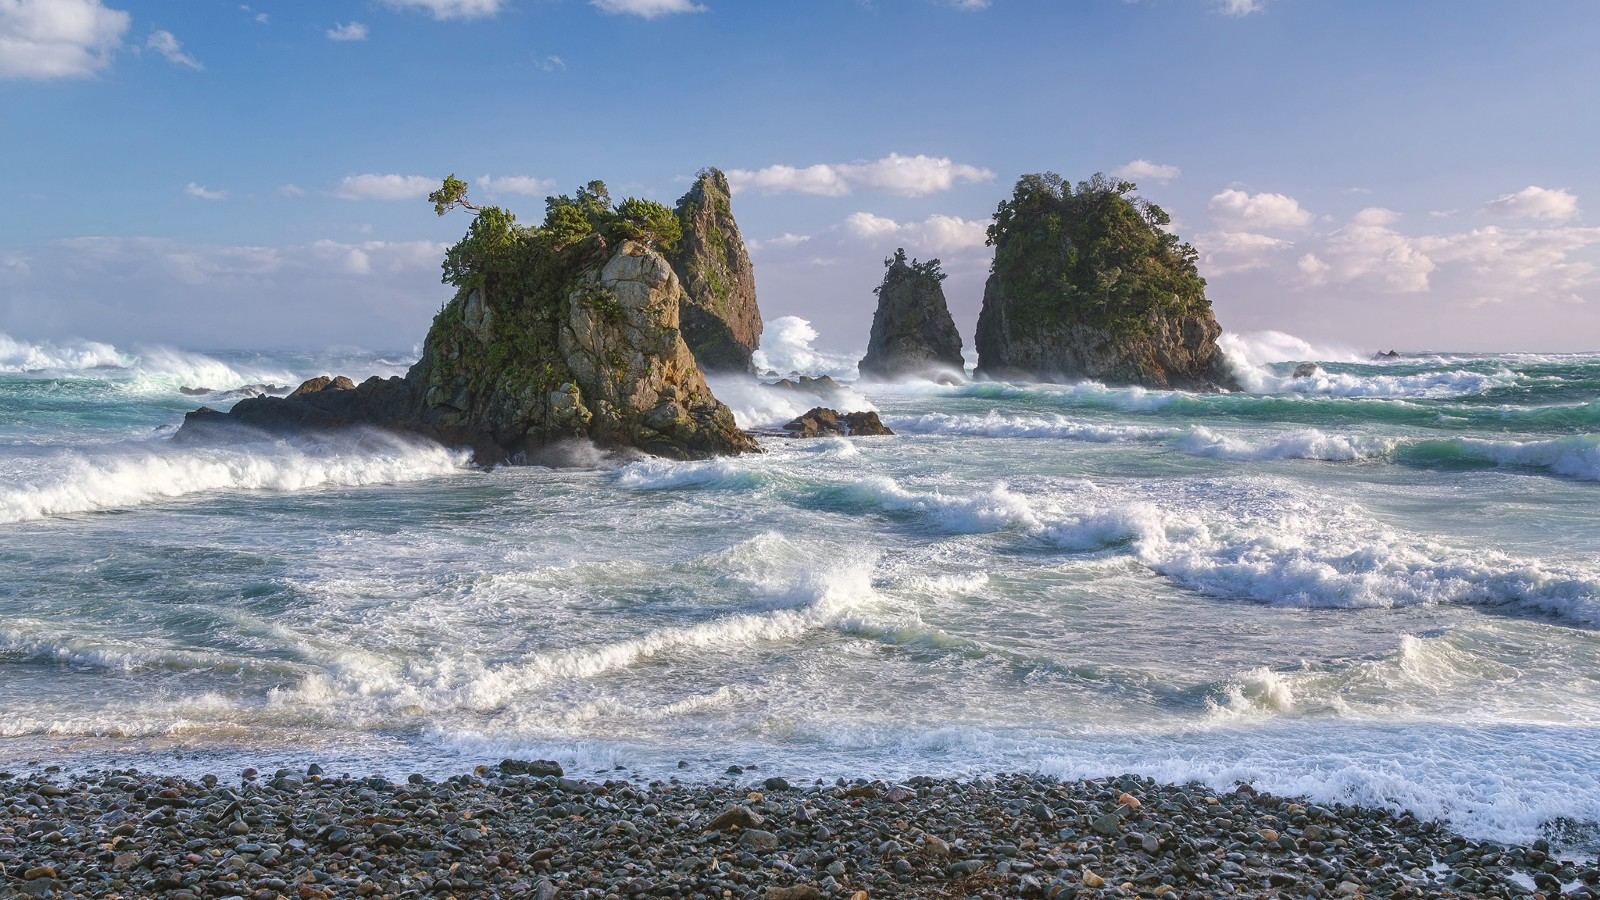 Great Surf Rush at Minokakeiwa Islets, Japan